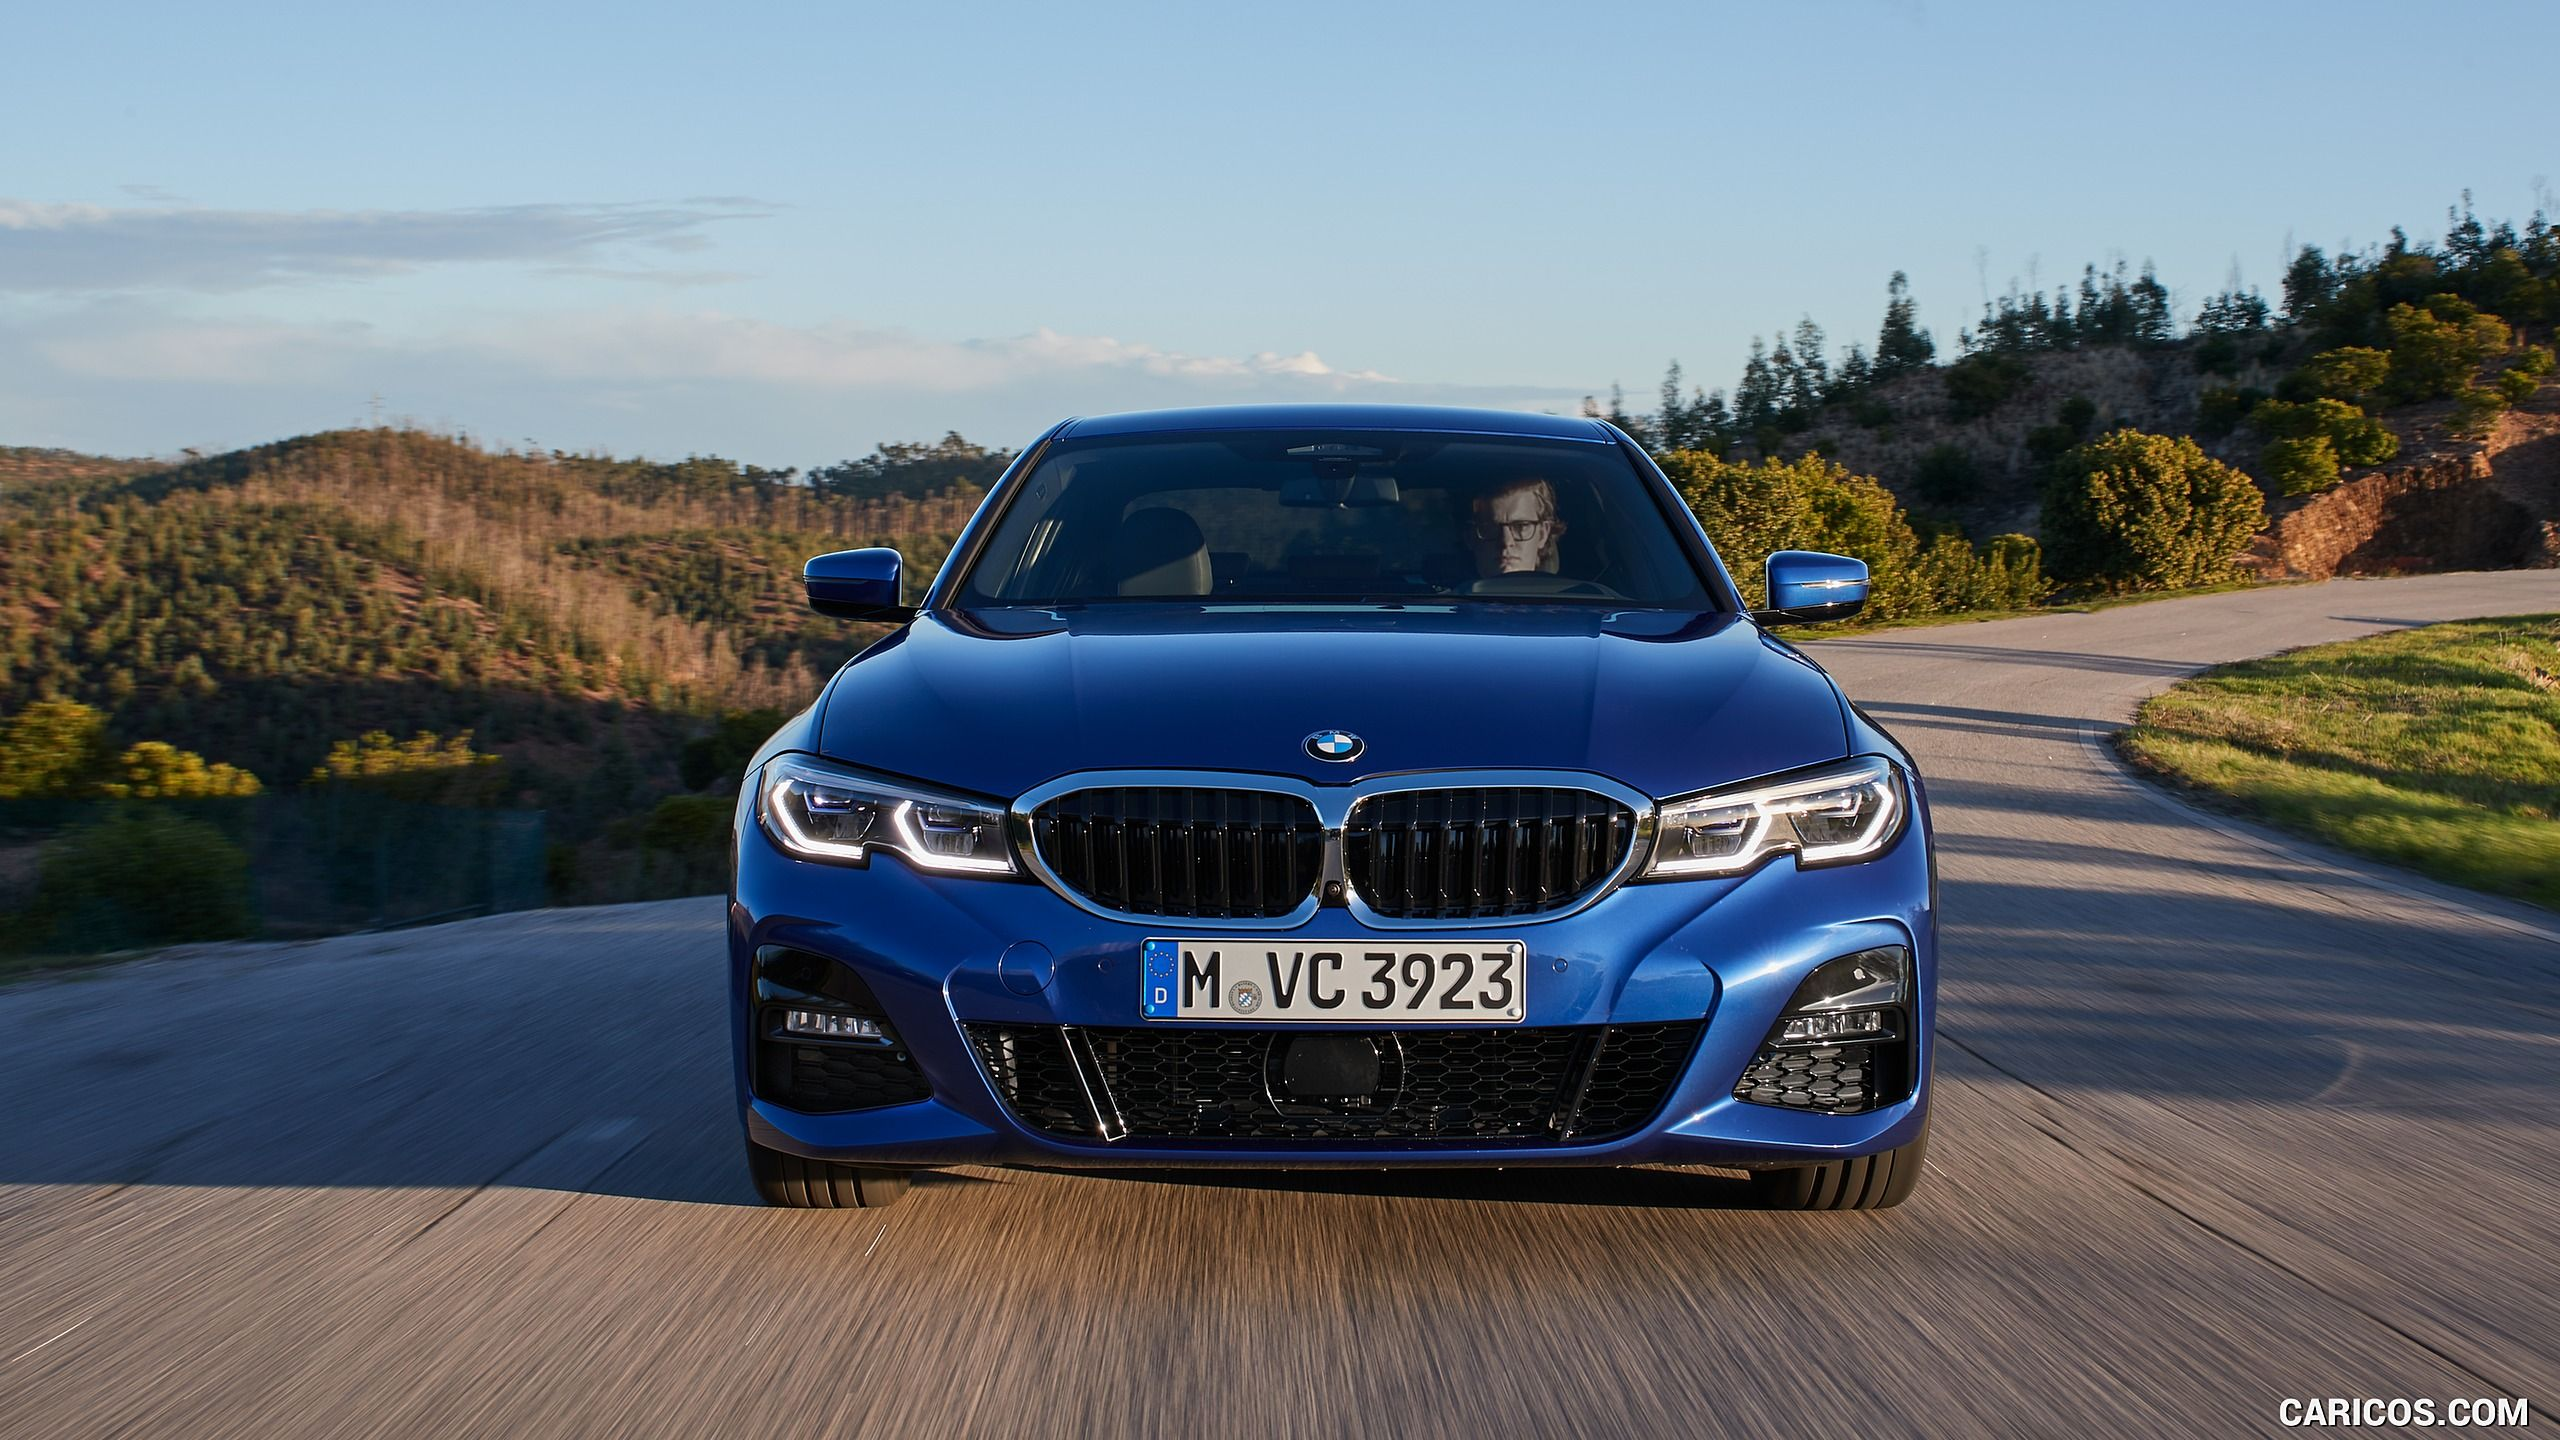 BMW 330i Wallpapers - Top Free BMW 330i Backgrounds ...